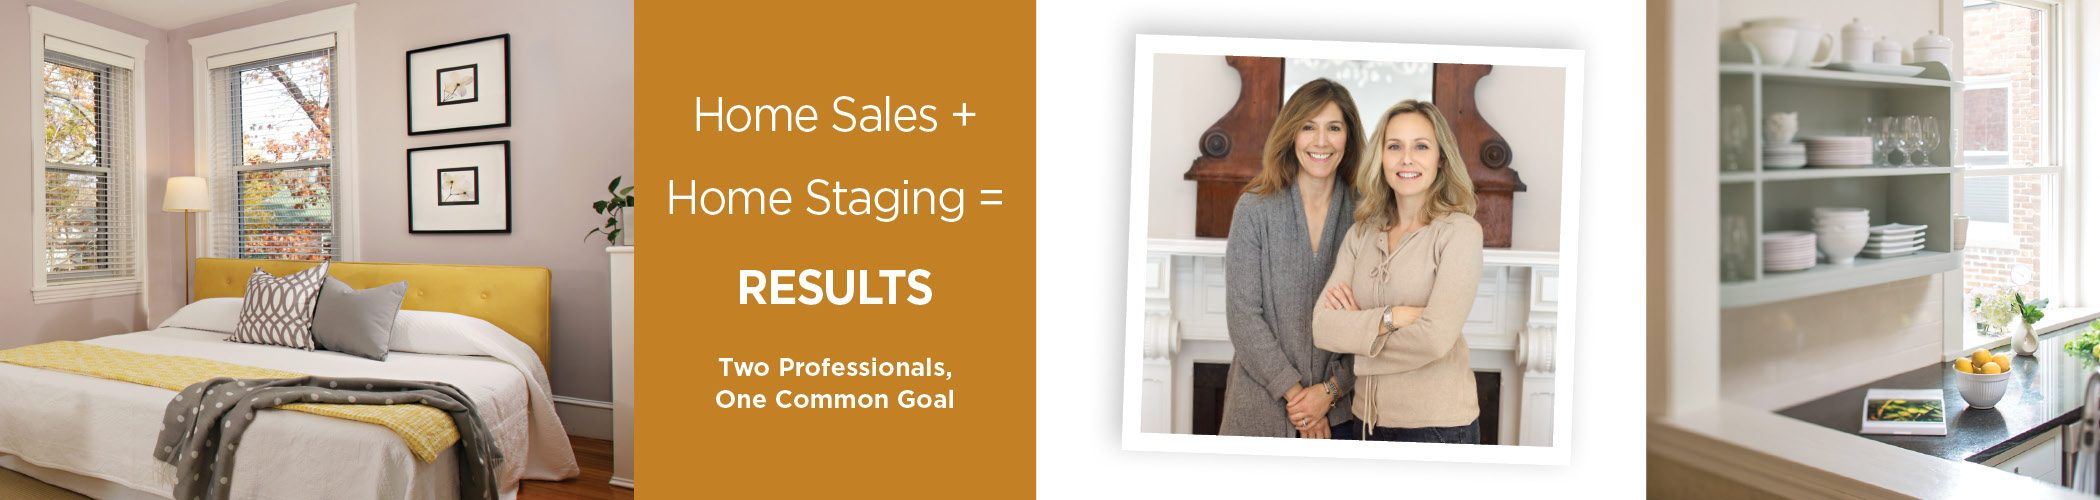 Home Sales and Staging